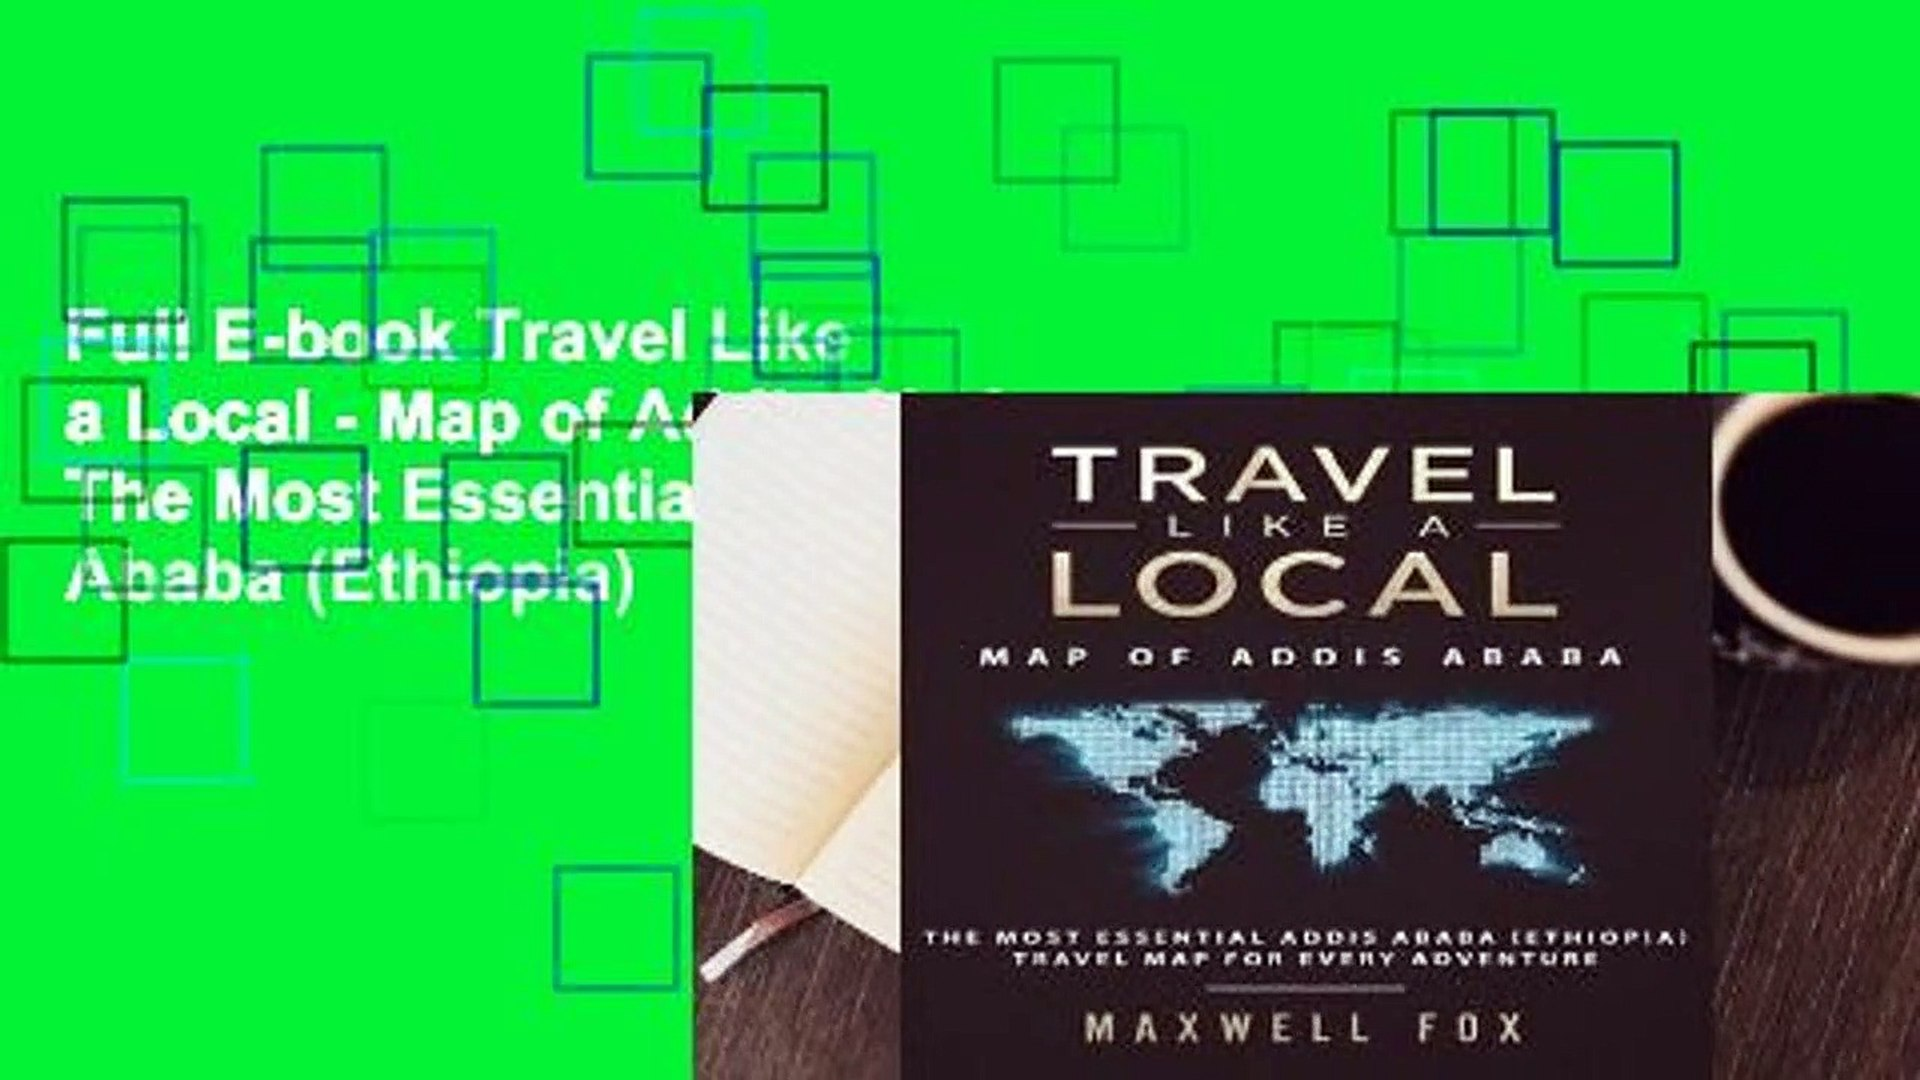 Full E-book Travel Like a Local - Map of Addis Ababa: The Most Essential Addis Ababa (Ethiopia)